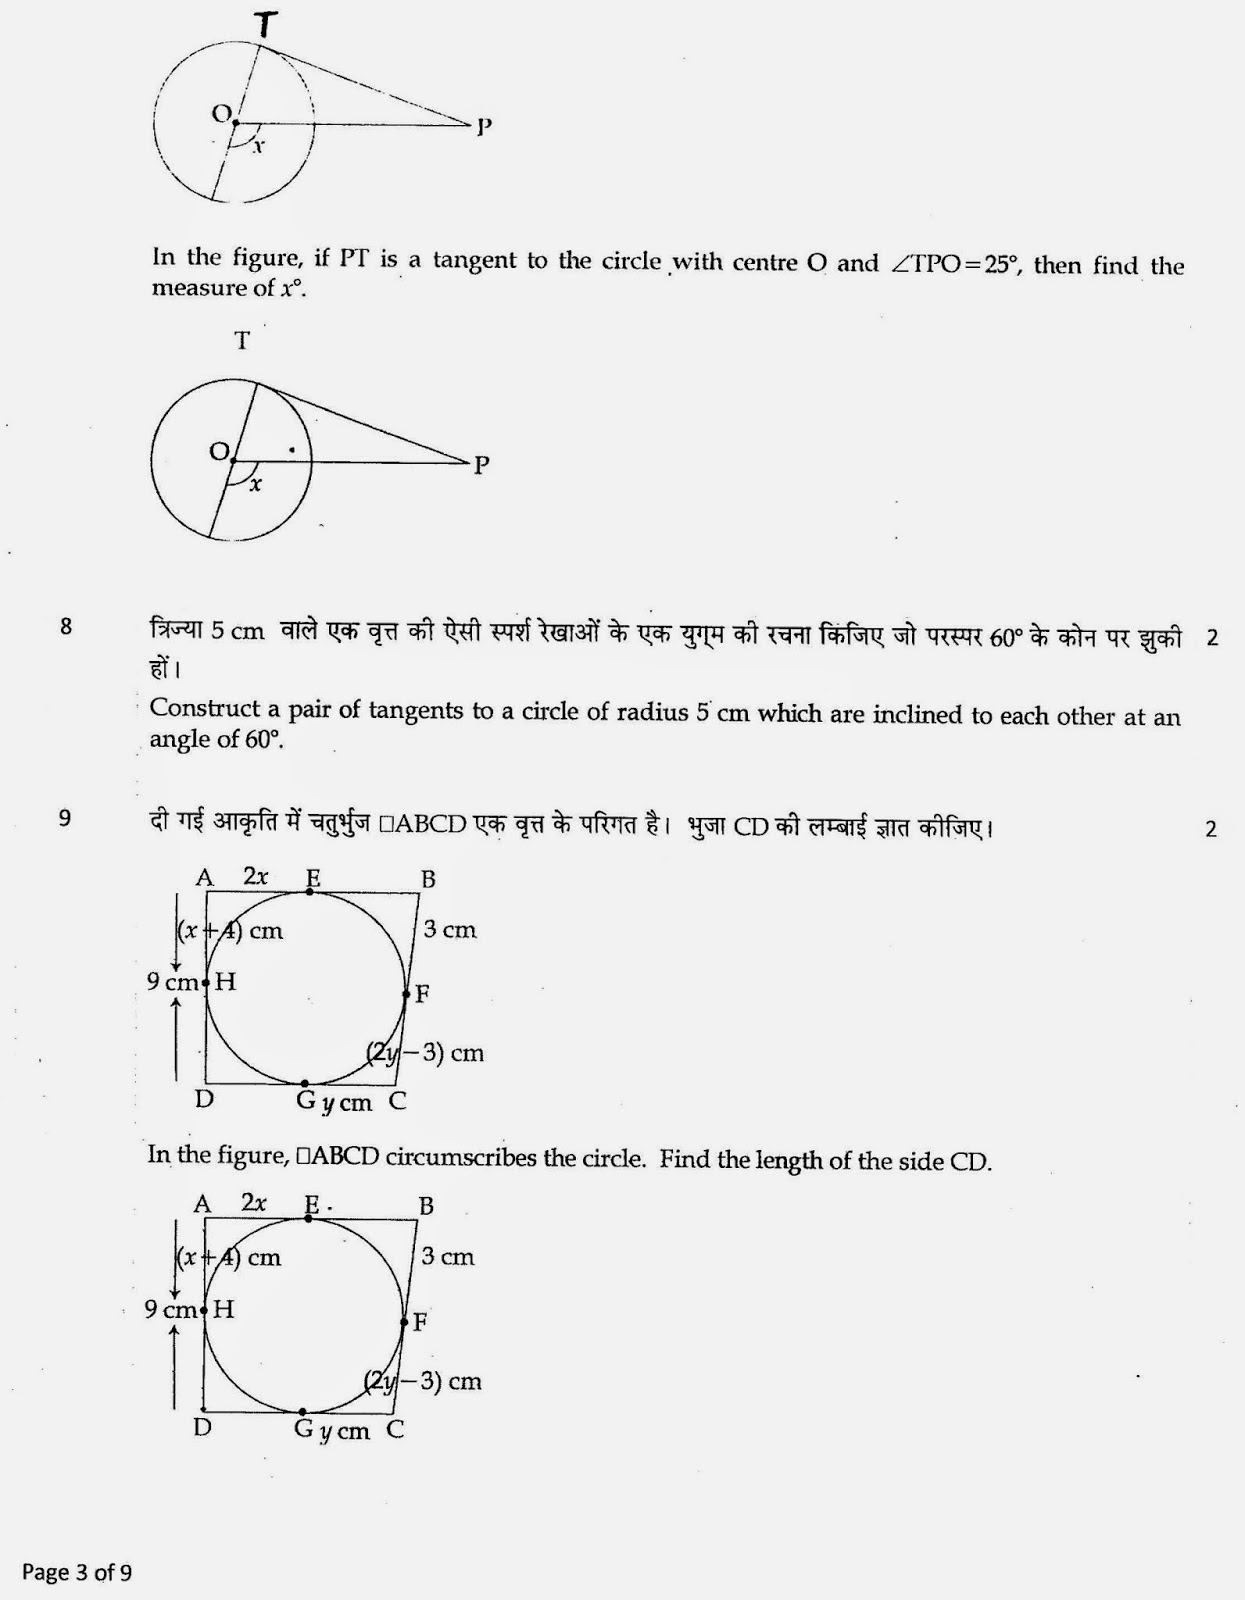 essay on cce pattern of cbse Dissertation topics in retail management disadvantages of cce patern in cbse free essays on advantages and disadvantages of cce essay cce pattern pattern of cbse.